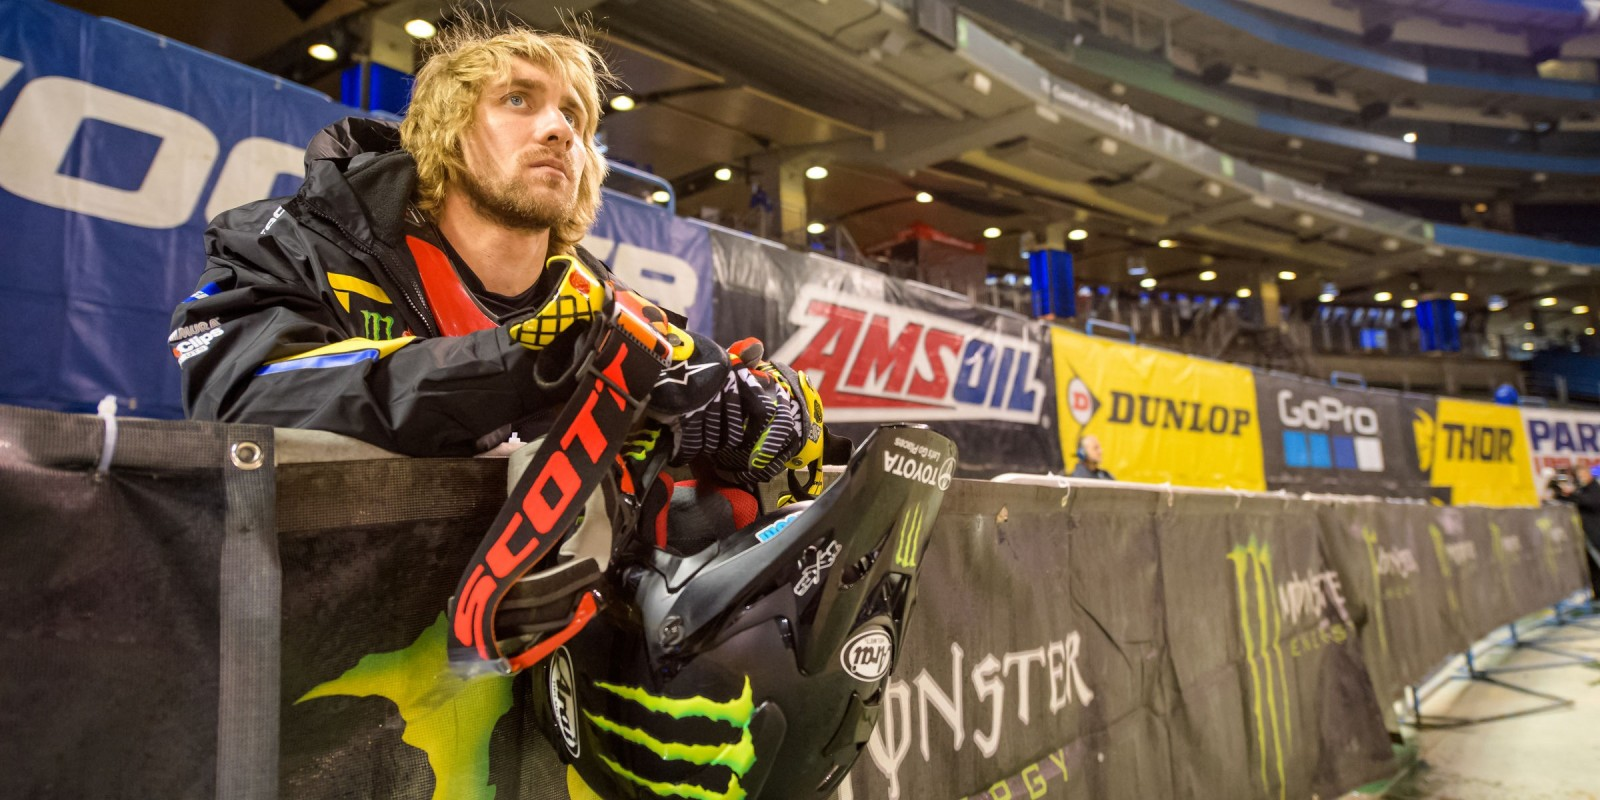 Barcia action shots at the 2017 Supercross championship in Toronto